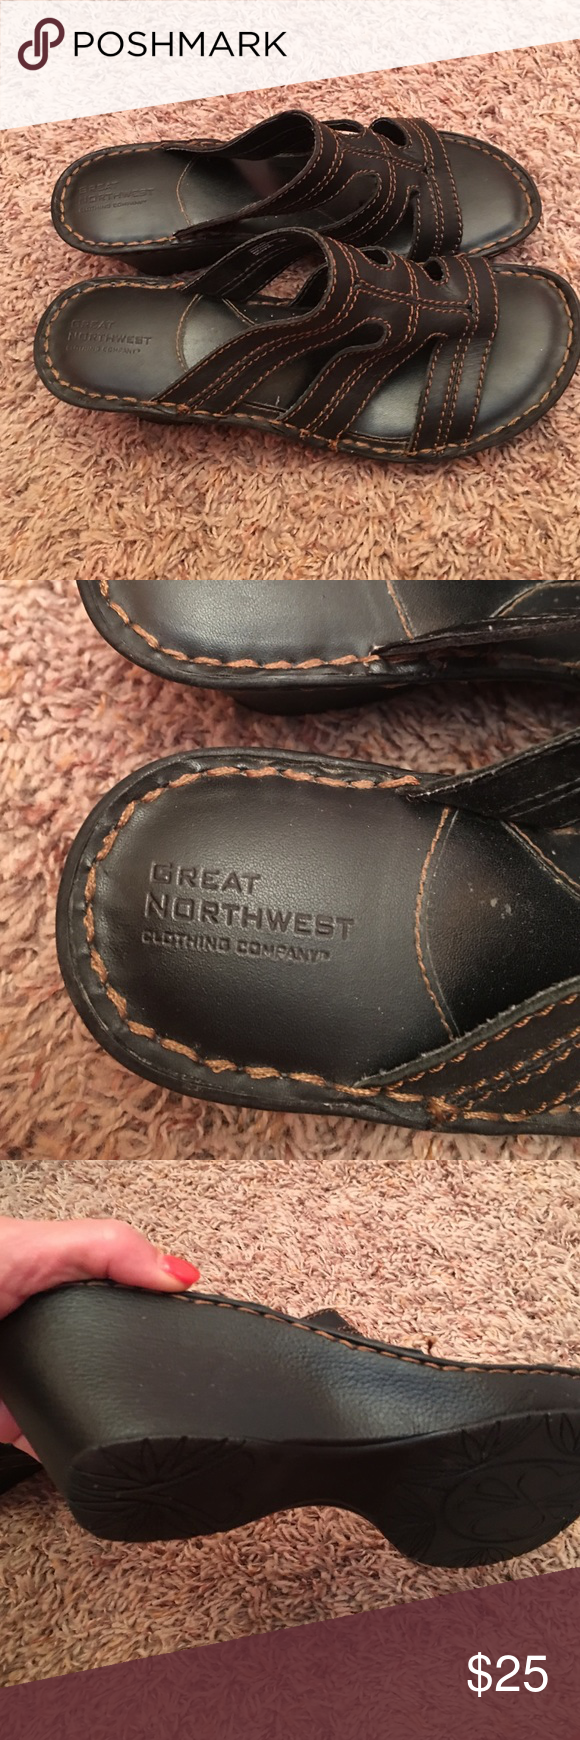 Great Northwestern Clothing Company  Black Sandal Leather upper...black with brown stitching sandal size 10 Shoes Sandals